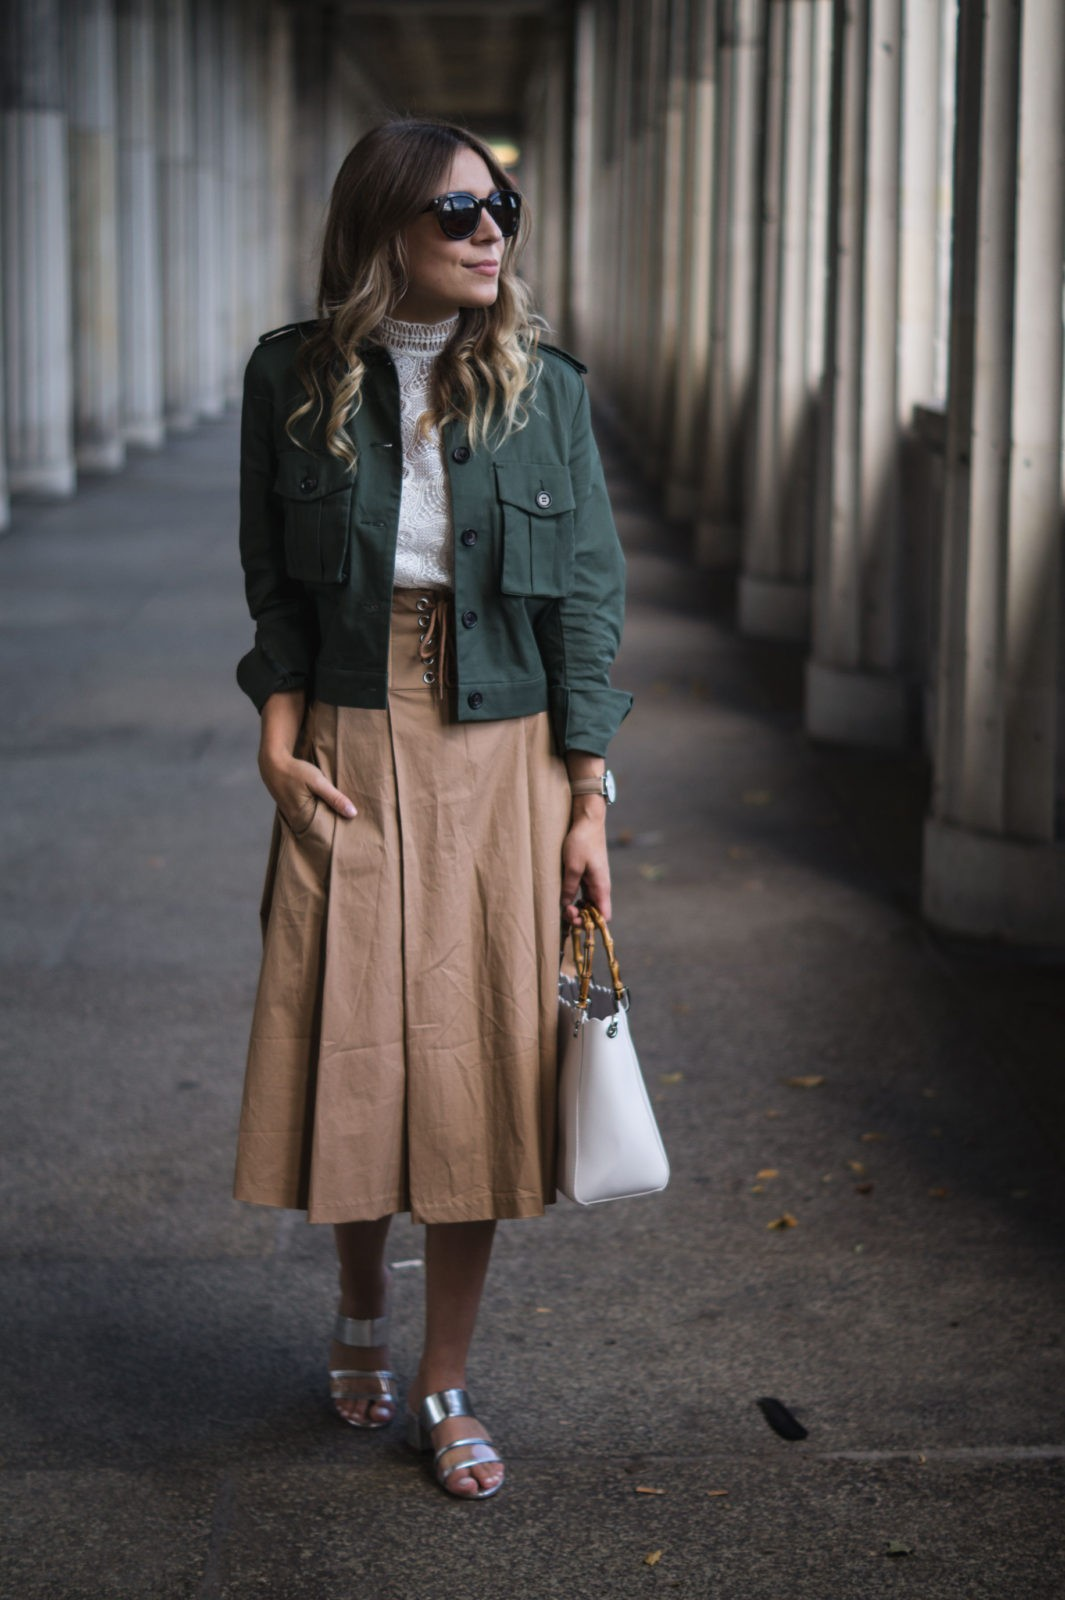 Fashion Week Berlin Streetstyle Sariety Midi Rock Skirt Museumsinsel MBFW Modeblogger Fashionblog Outfit-18